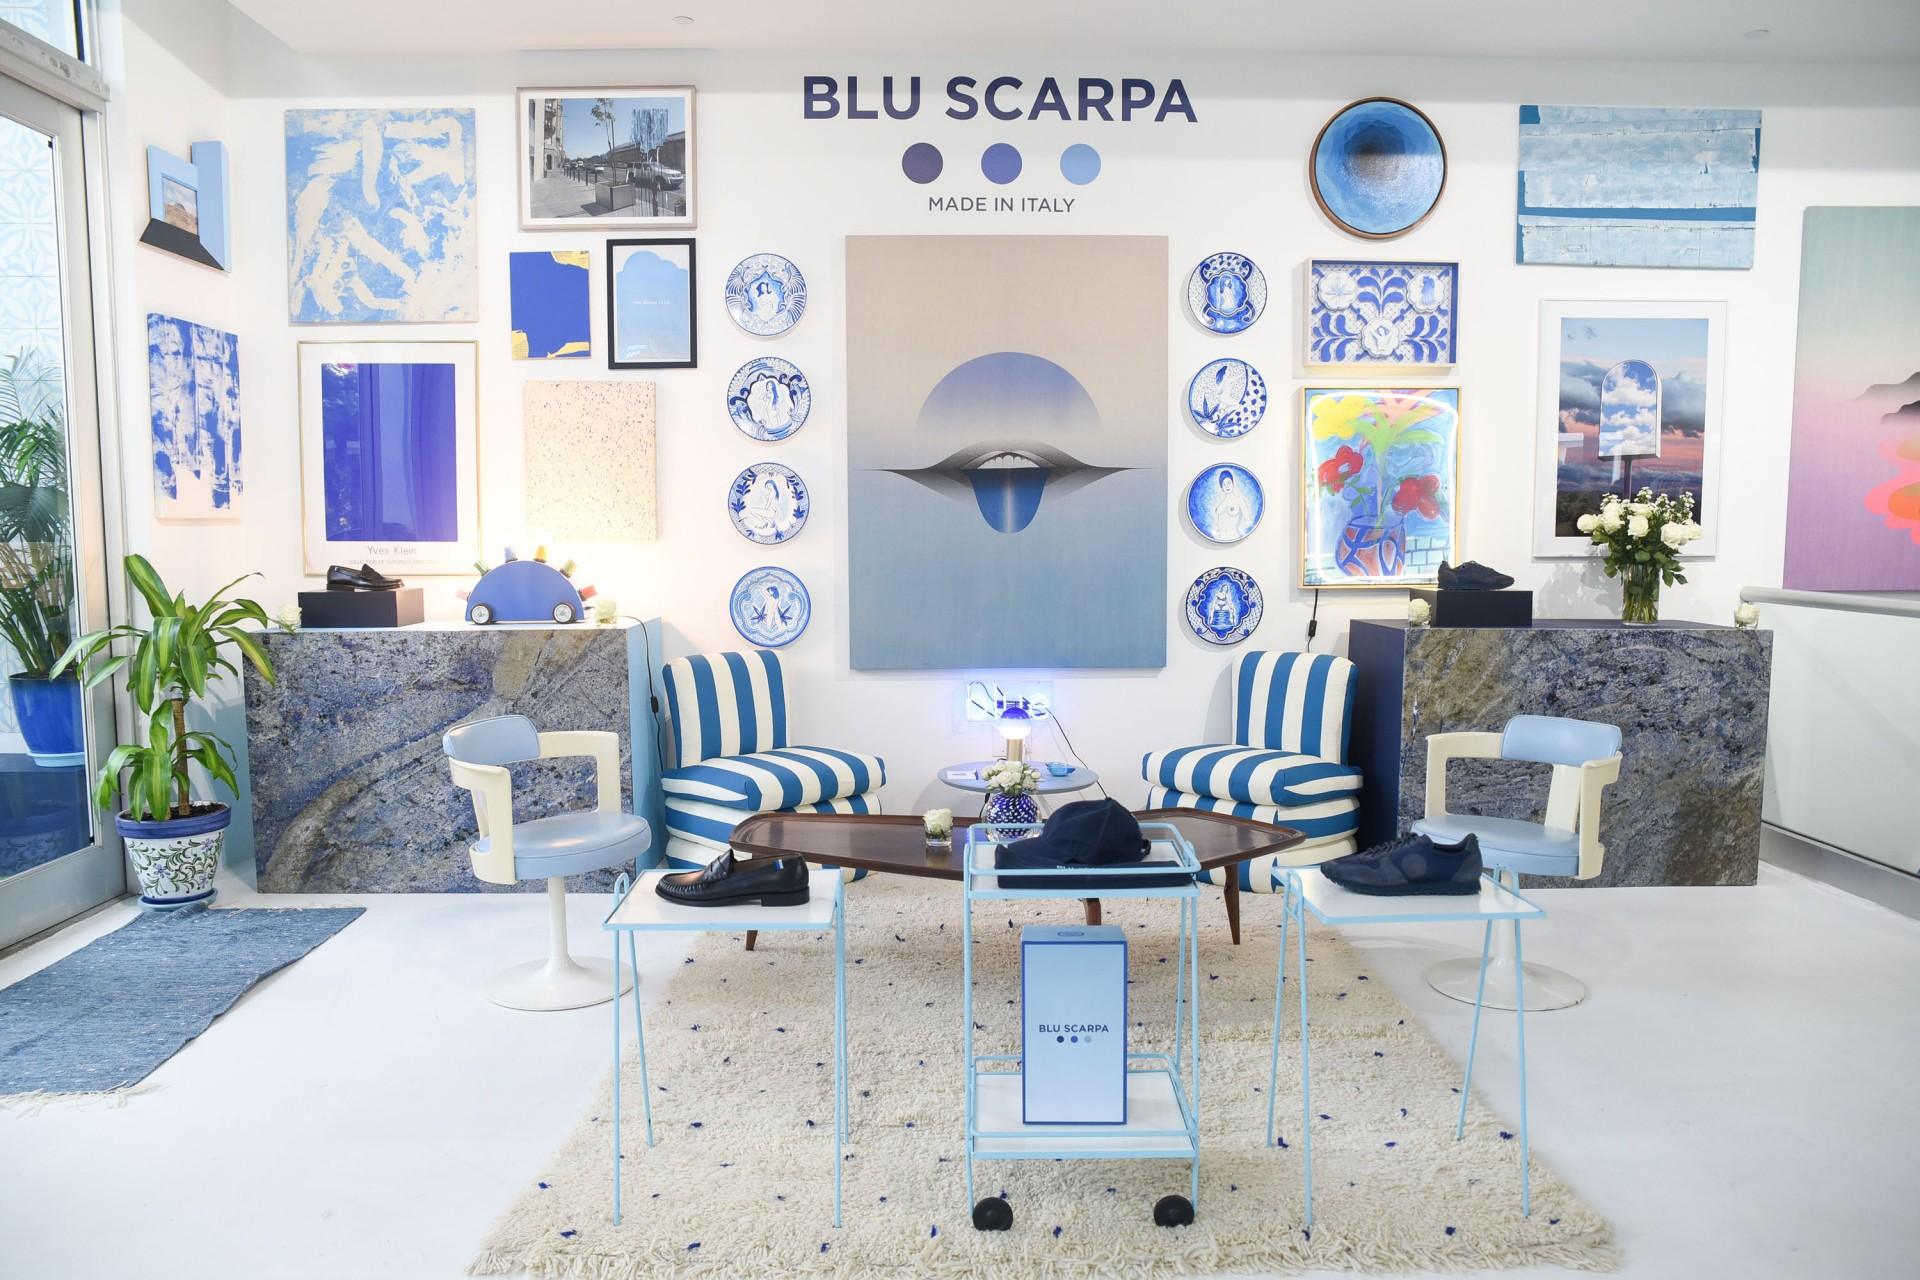 Blue Scarpa Cocktail Reception at the Office